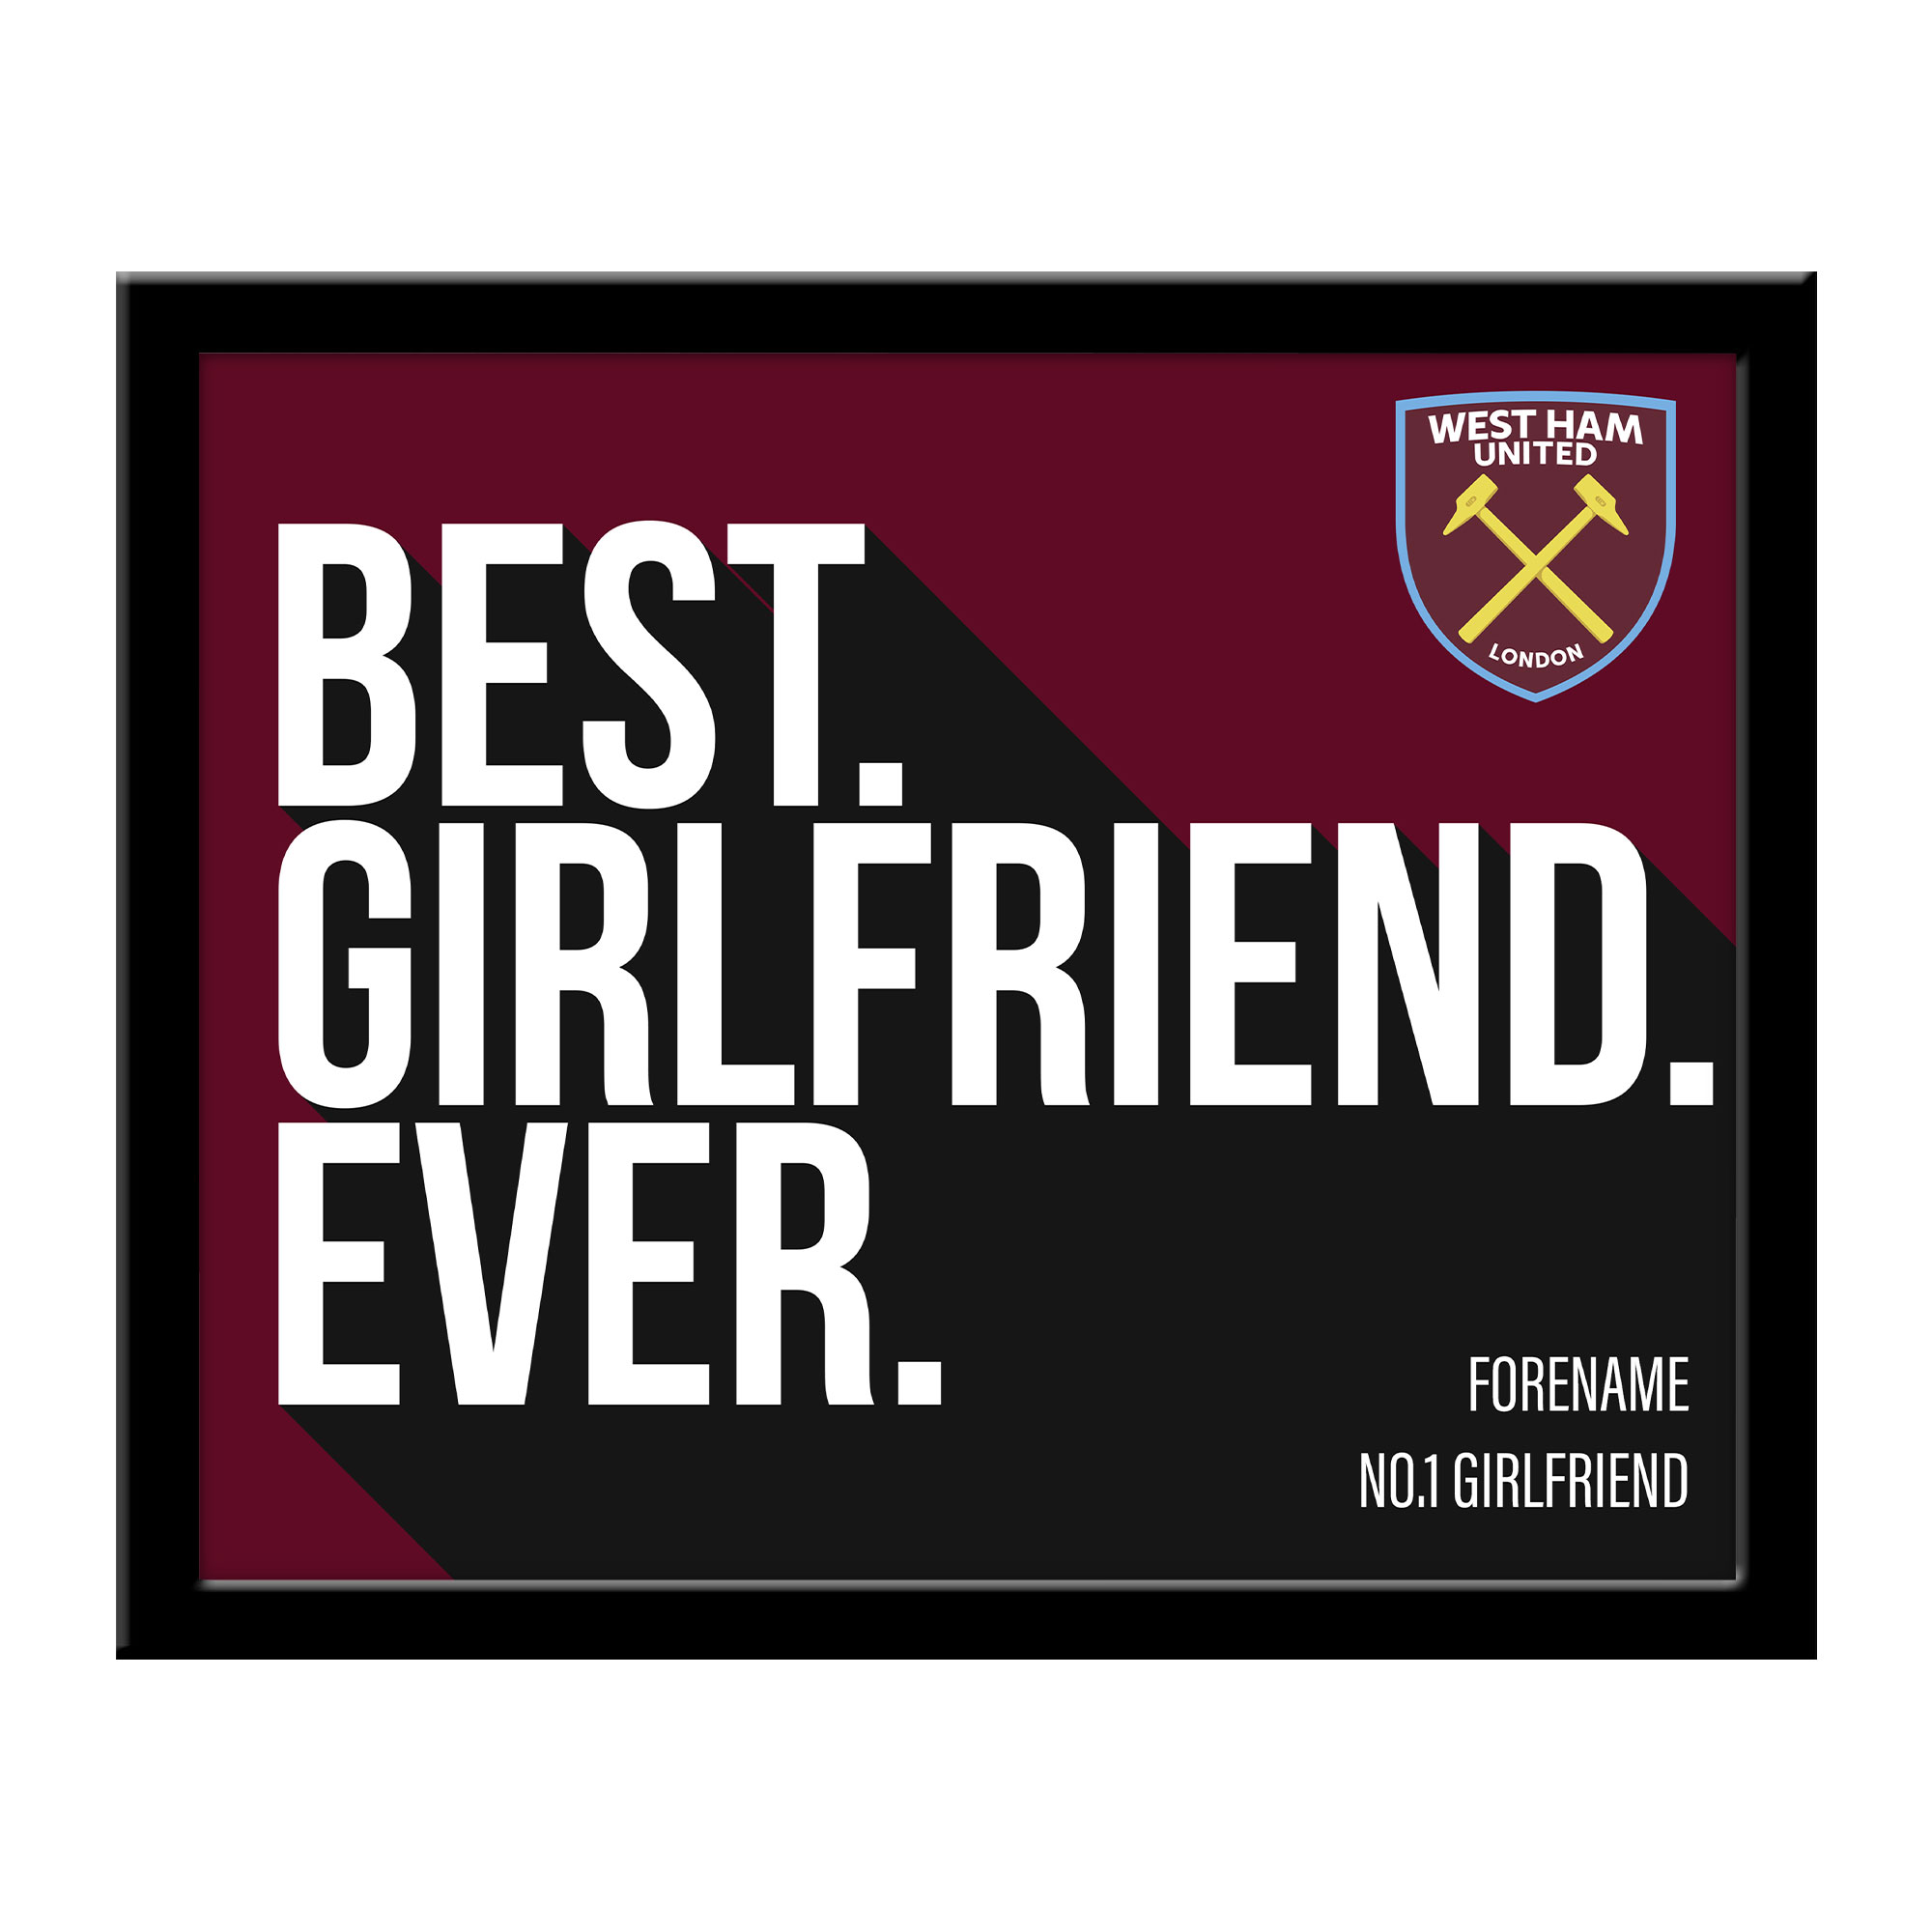 West Ham United FC Best Girlfriend Ever 10 x 8 Photo Framed